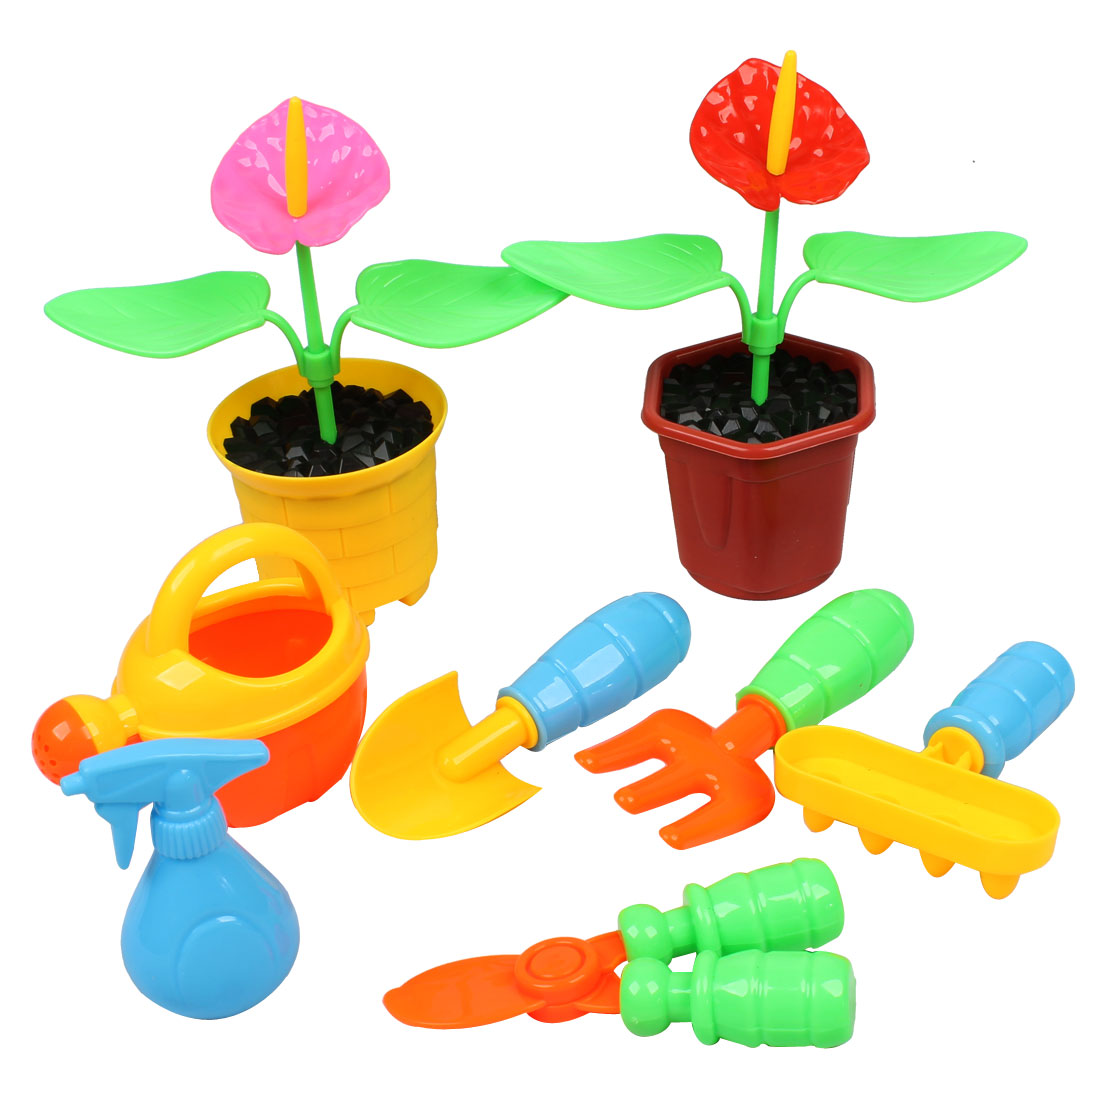 Kids Colorful Pot Culture Scissors Rake Scoop Spray Bottle Grow Flower Toy Set 8 in 1